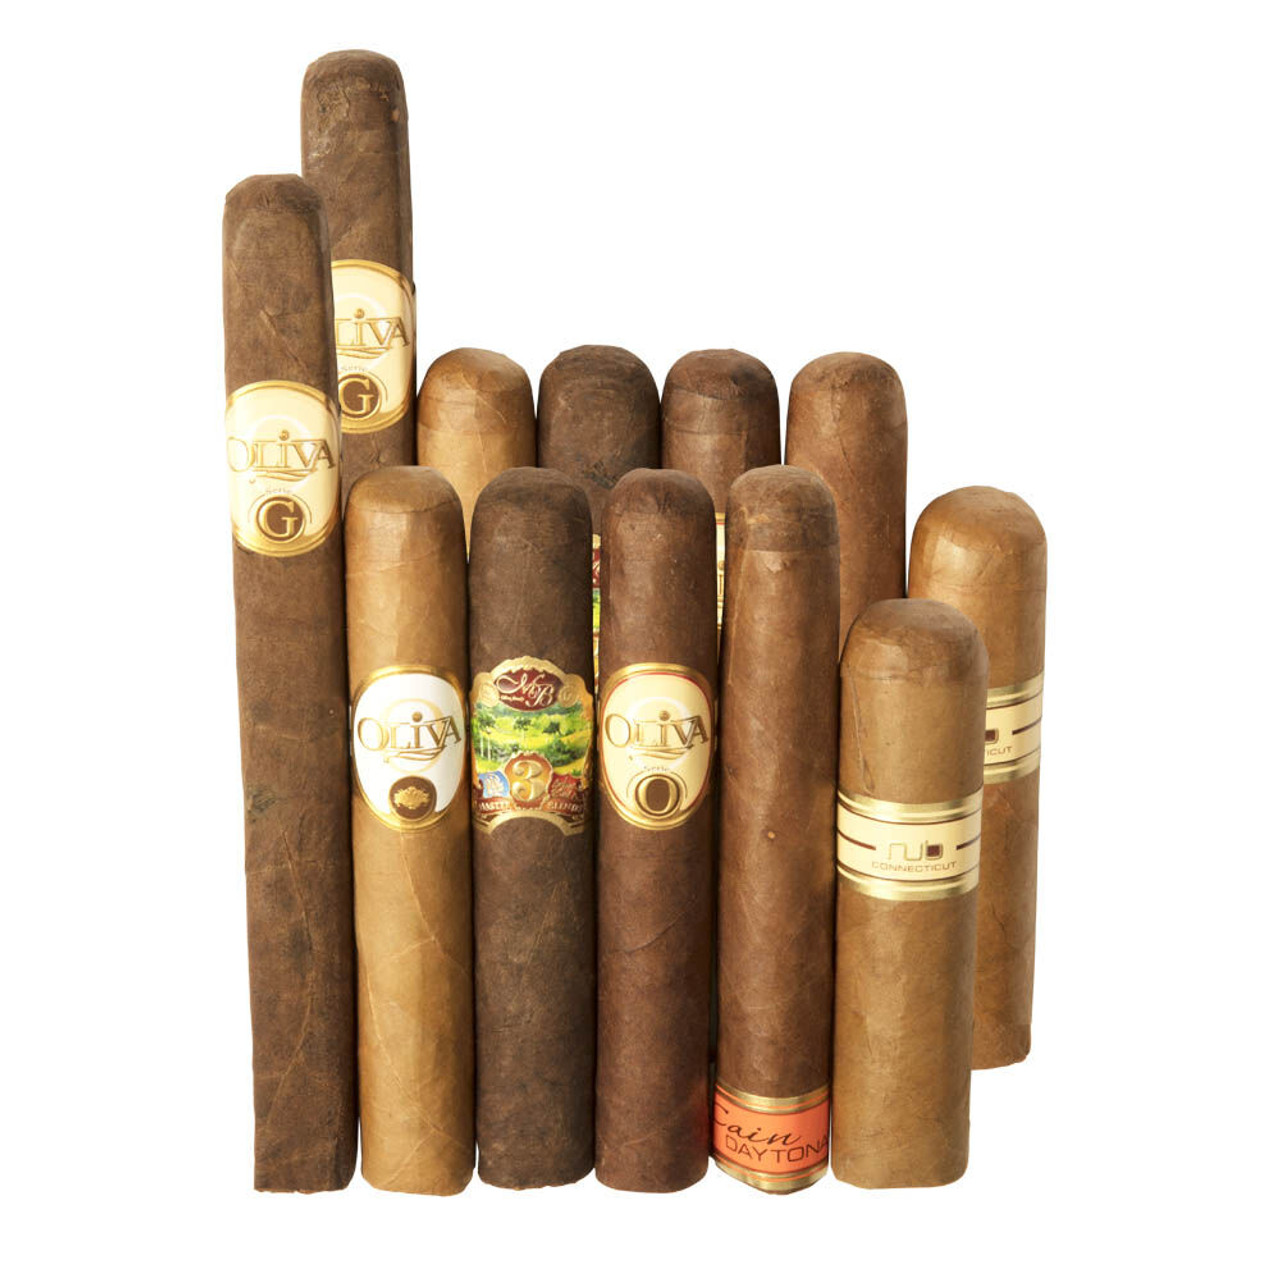 Cigar Samplers Oliva Mixed Collection #3 Cigars (Pack of 12)